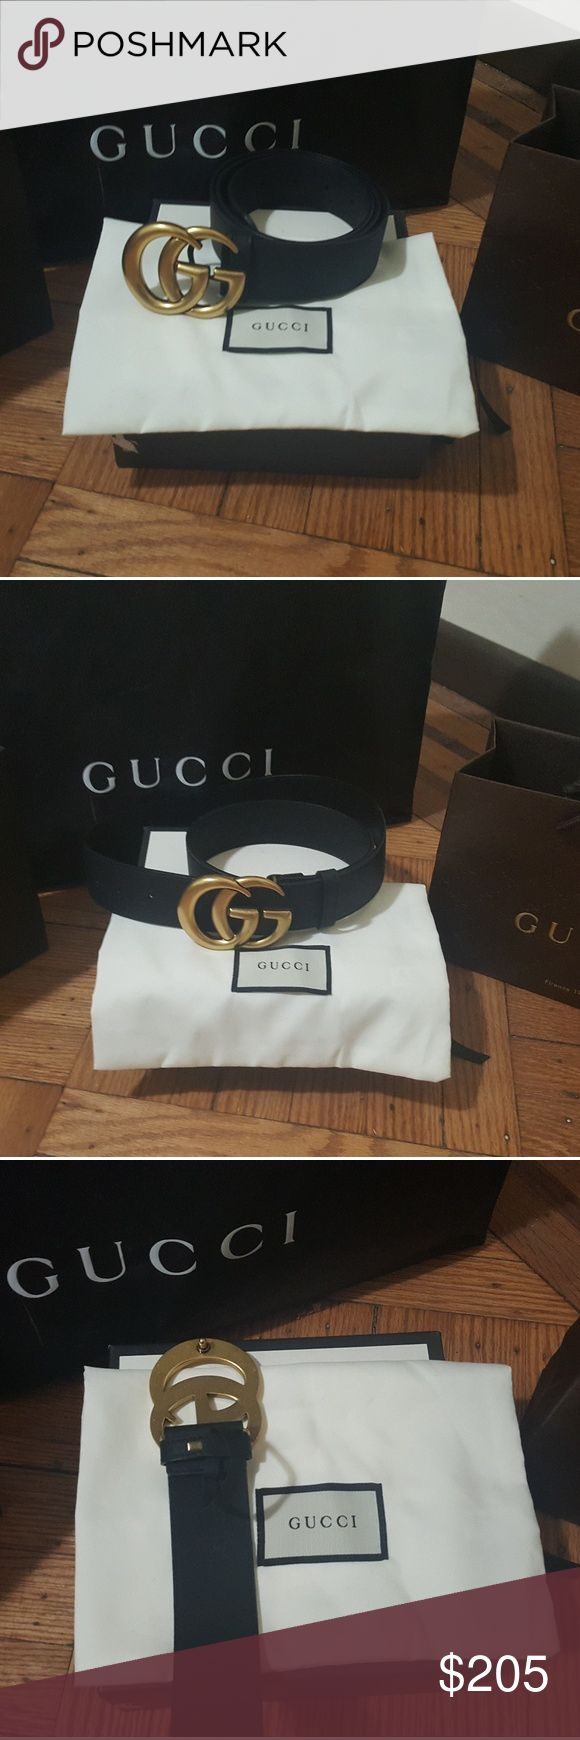 Brand new Gucci belt Brand new black leather Gucci belt with tag with double G buckle gold brass comes with box and dust bag. Gucci Accessories Belts